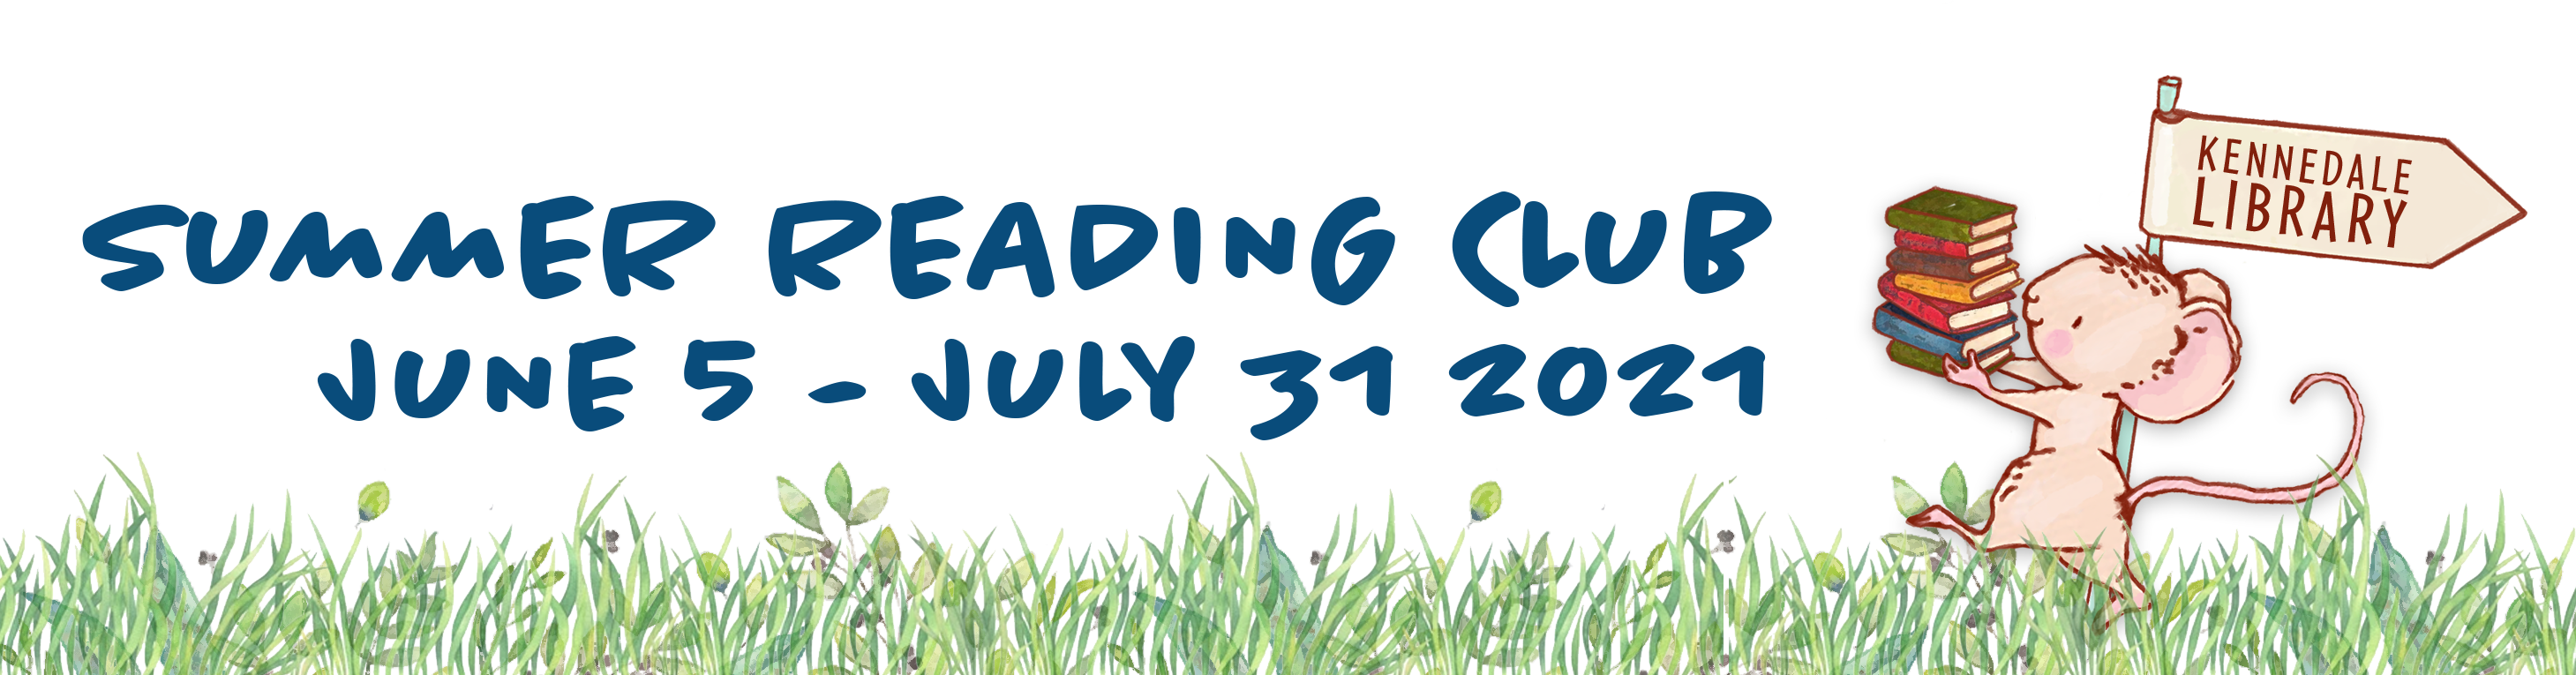 Summer Reading Club: June 5 through July 31, 2021